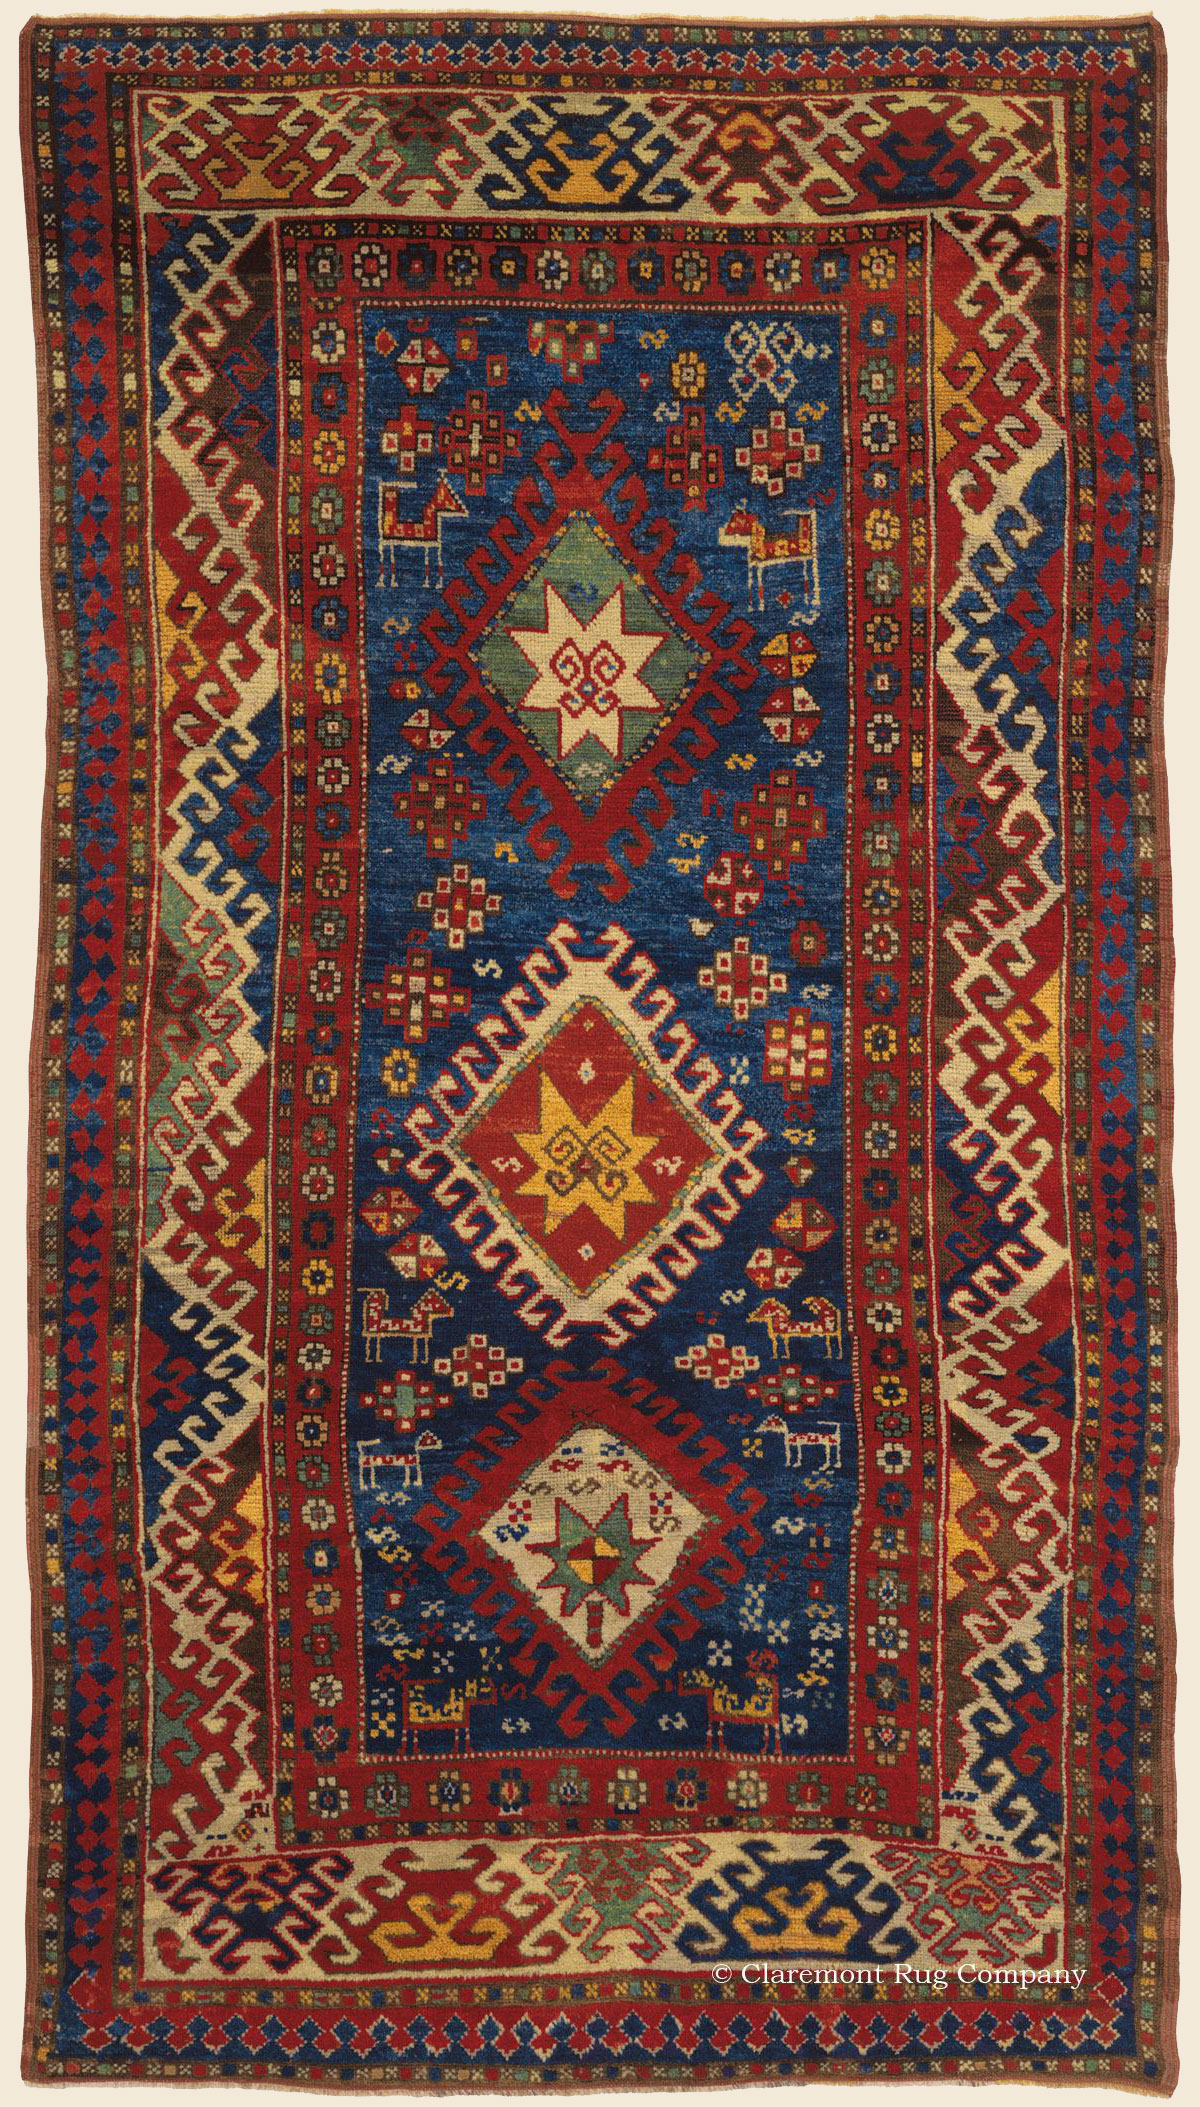 Antique Kazak Rugs Carpets From The